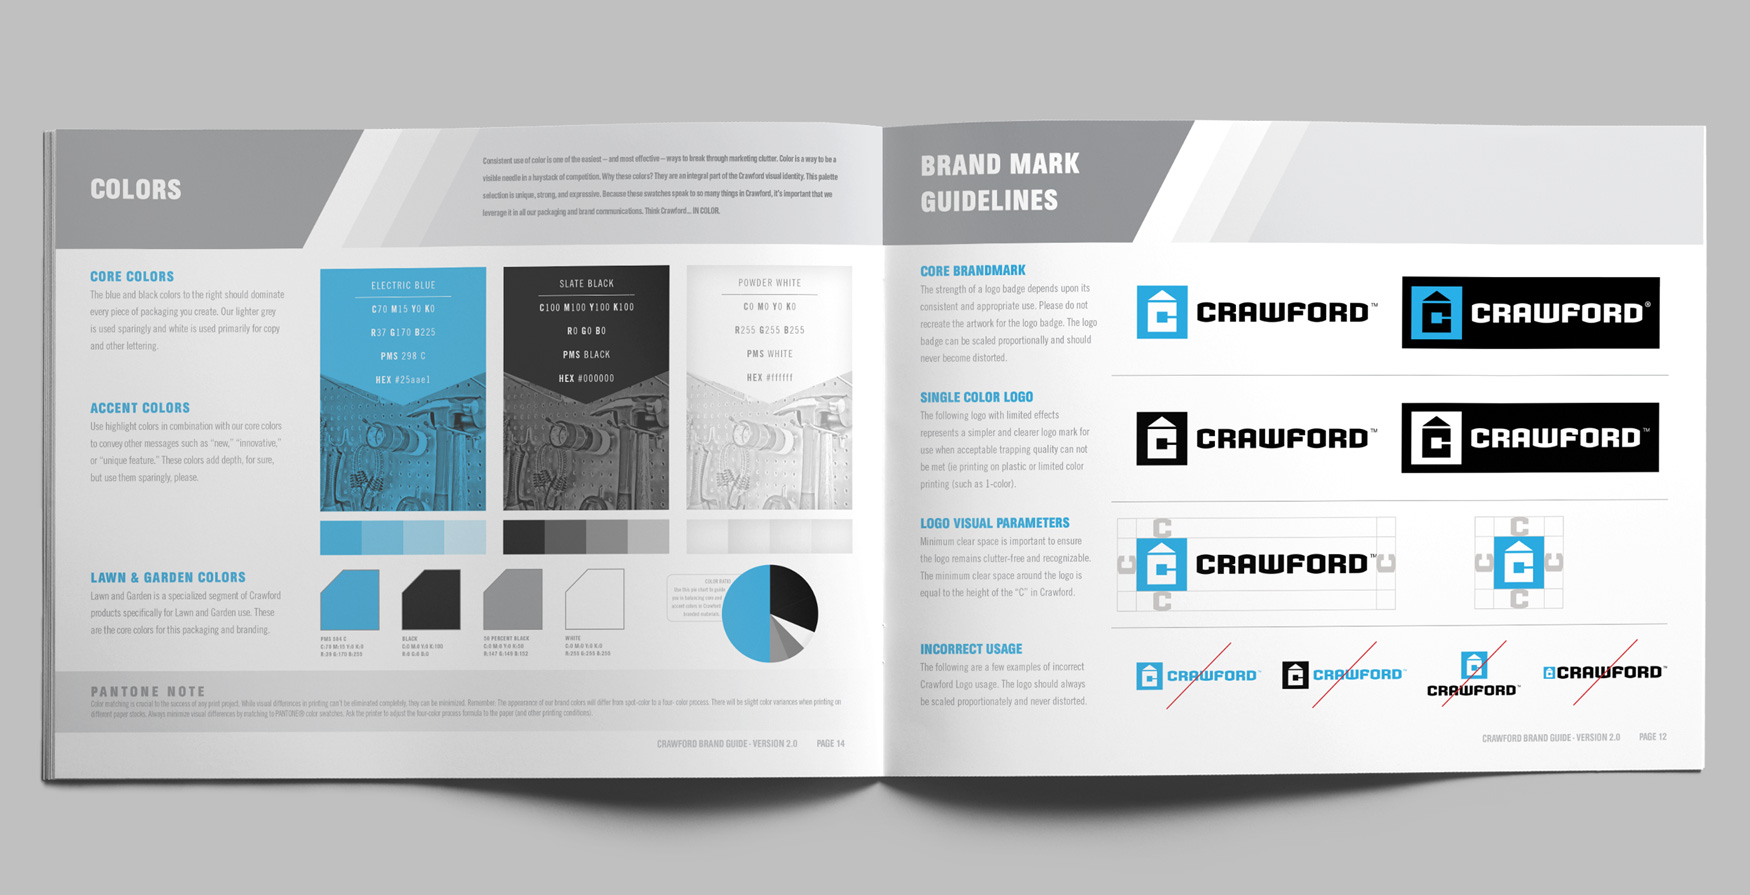 crawford-brand-guide-book-design-interior-page-layout-branding-clean-hardware-industrial-graphic-design-guidelines-2